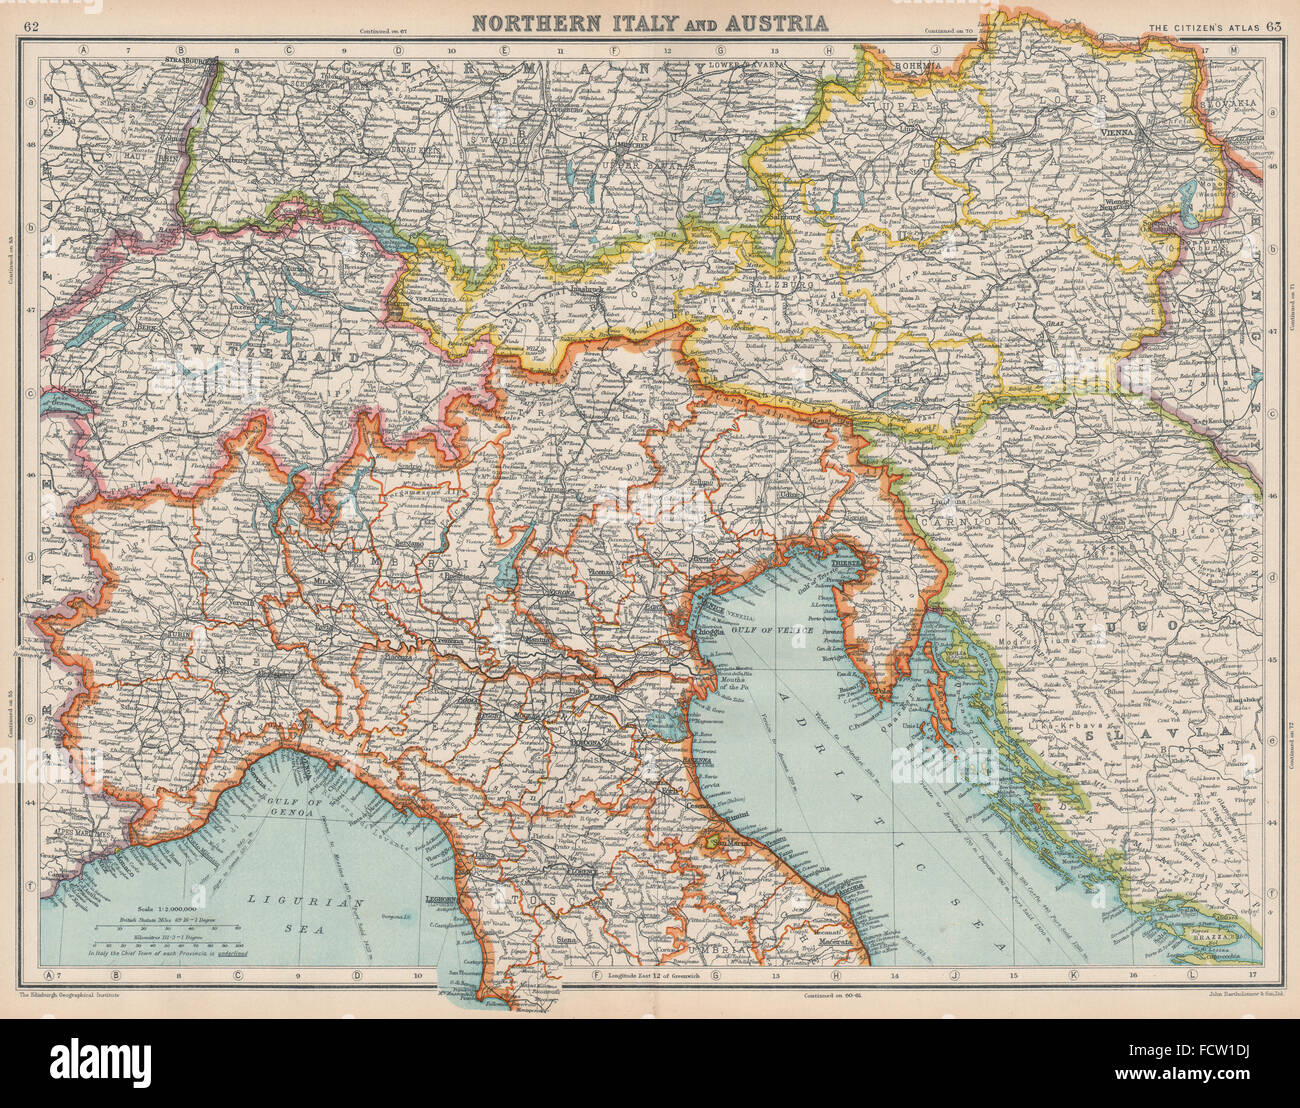 NORTH ITALY AUSTRIA Italian Istria ZaraZadar Free State Of - Map of austria and italy